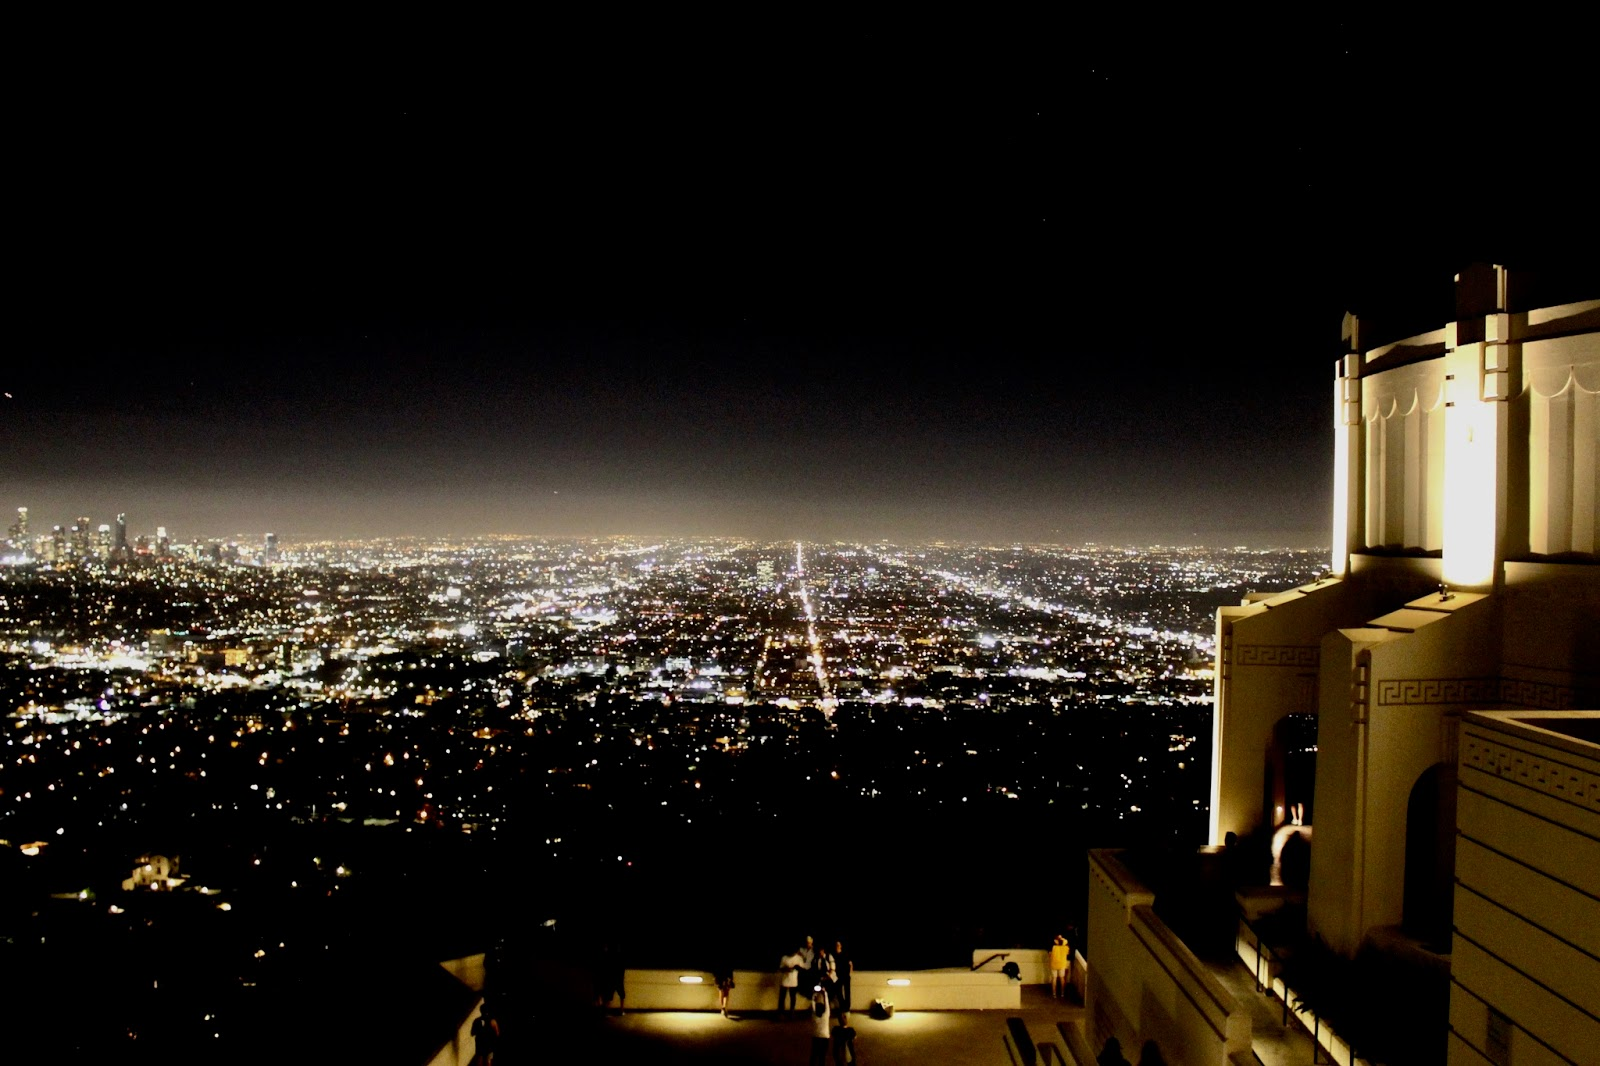 Los Angeles Griffith Observatory at Night